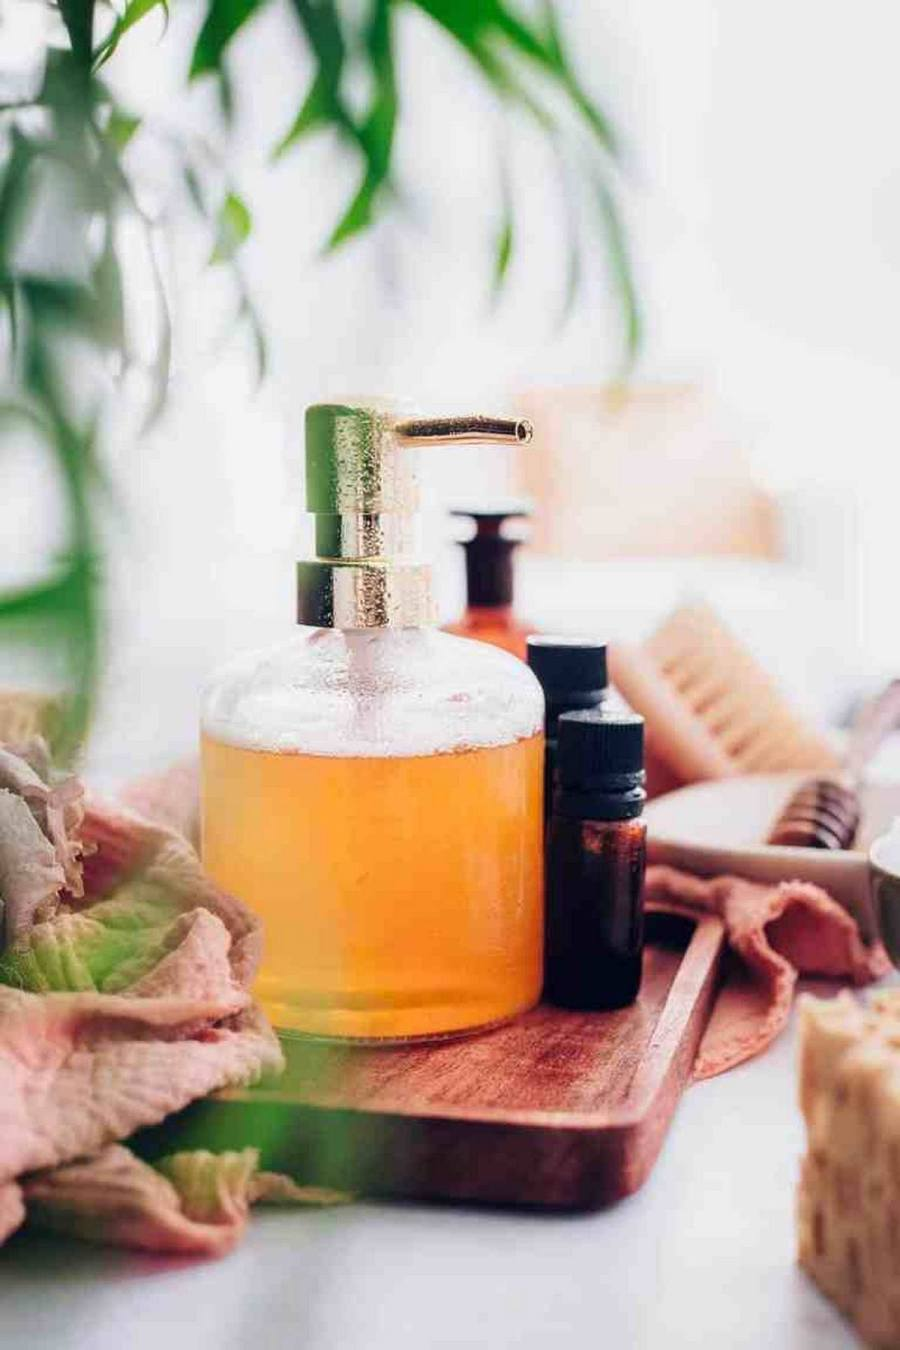 Your skin loves honey because it's loaded with antioxidants, vitamins and minerals. It's also healing, anti-bacterial and anti-inflammatory, which gives it a wide range of beauty uses, from acne treatments to hair masks.